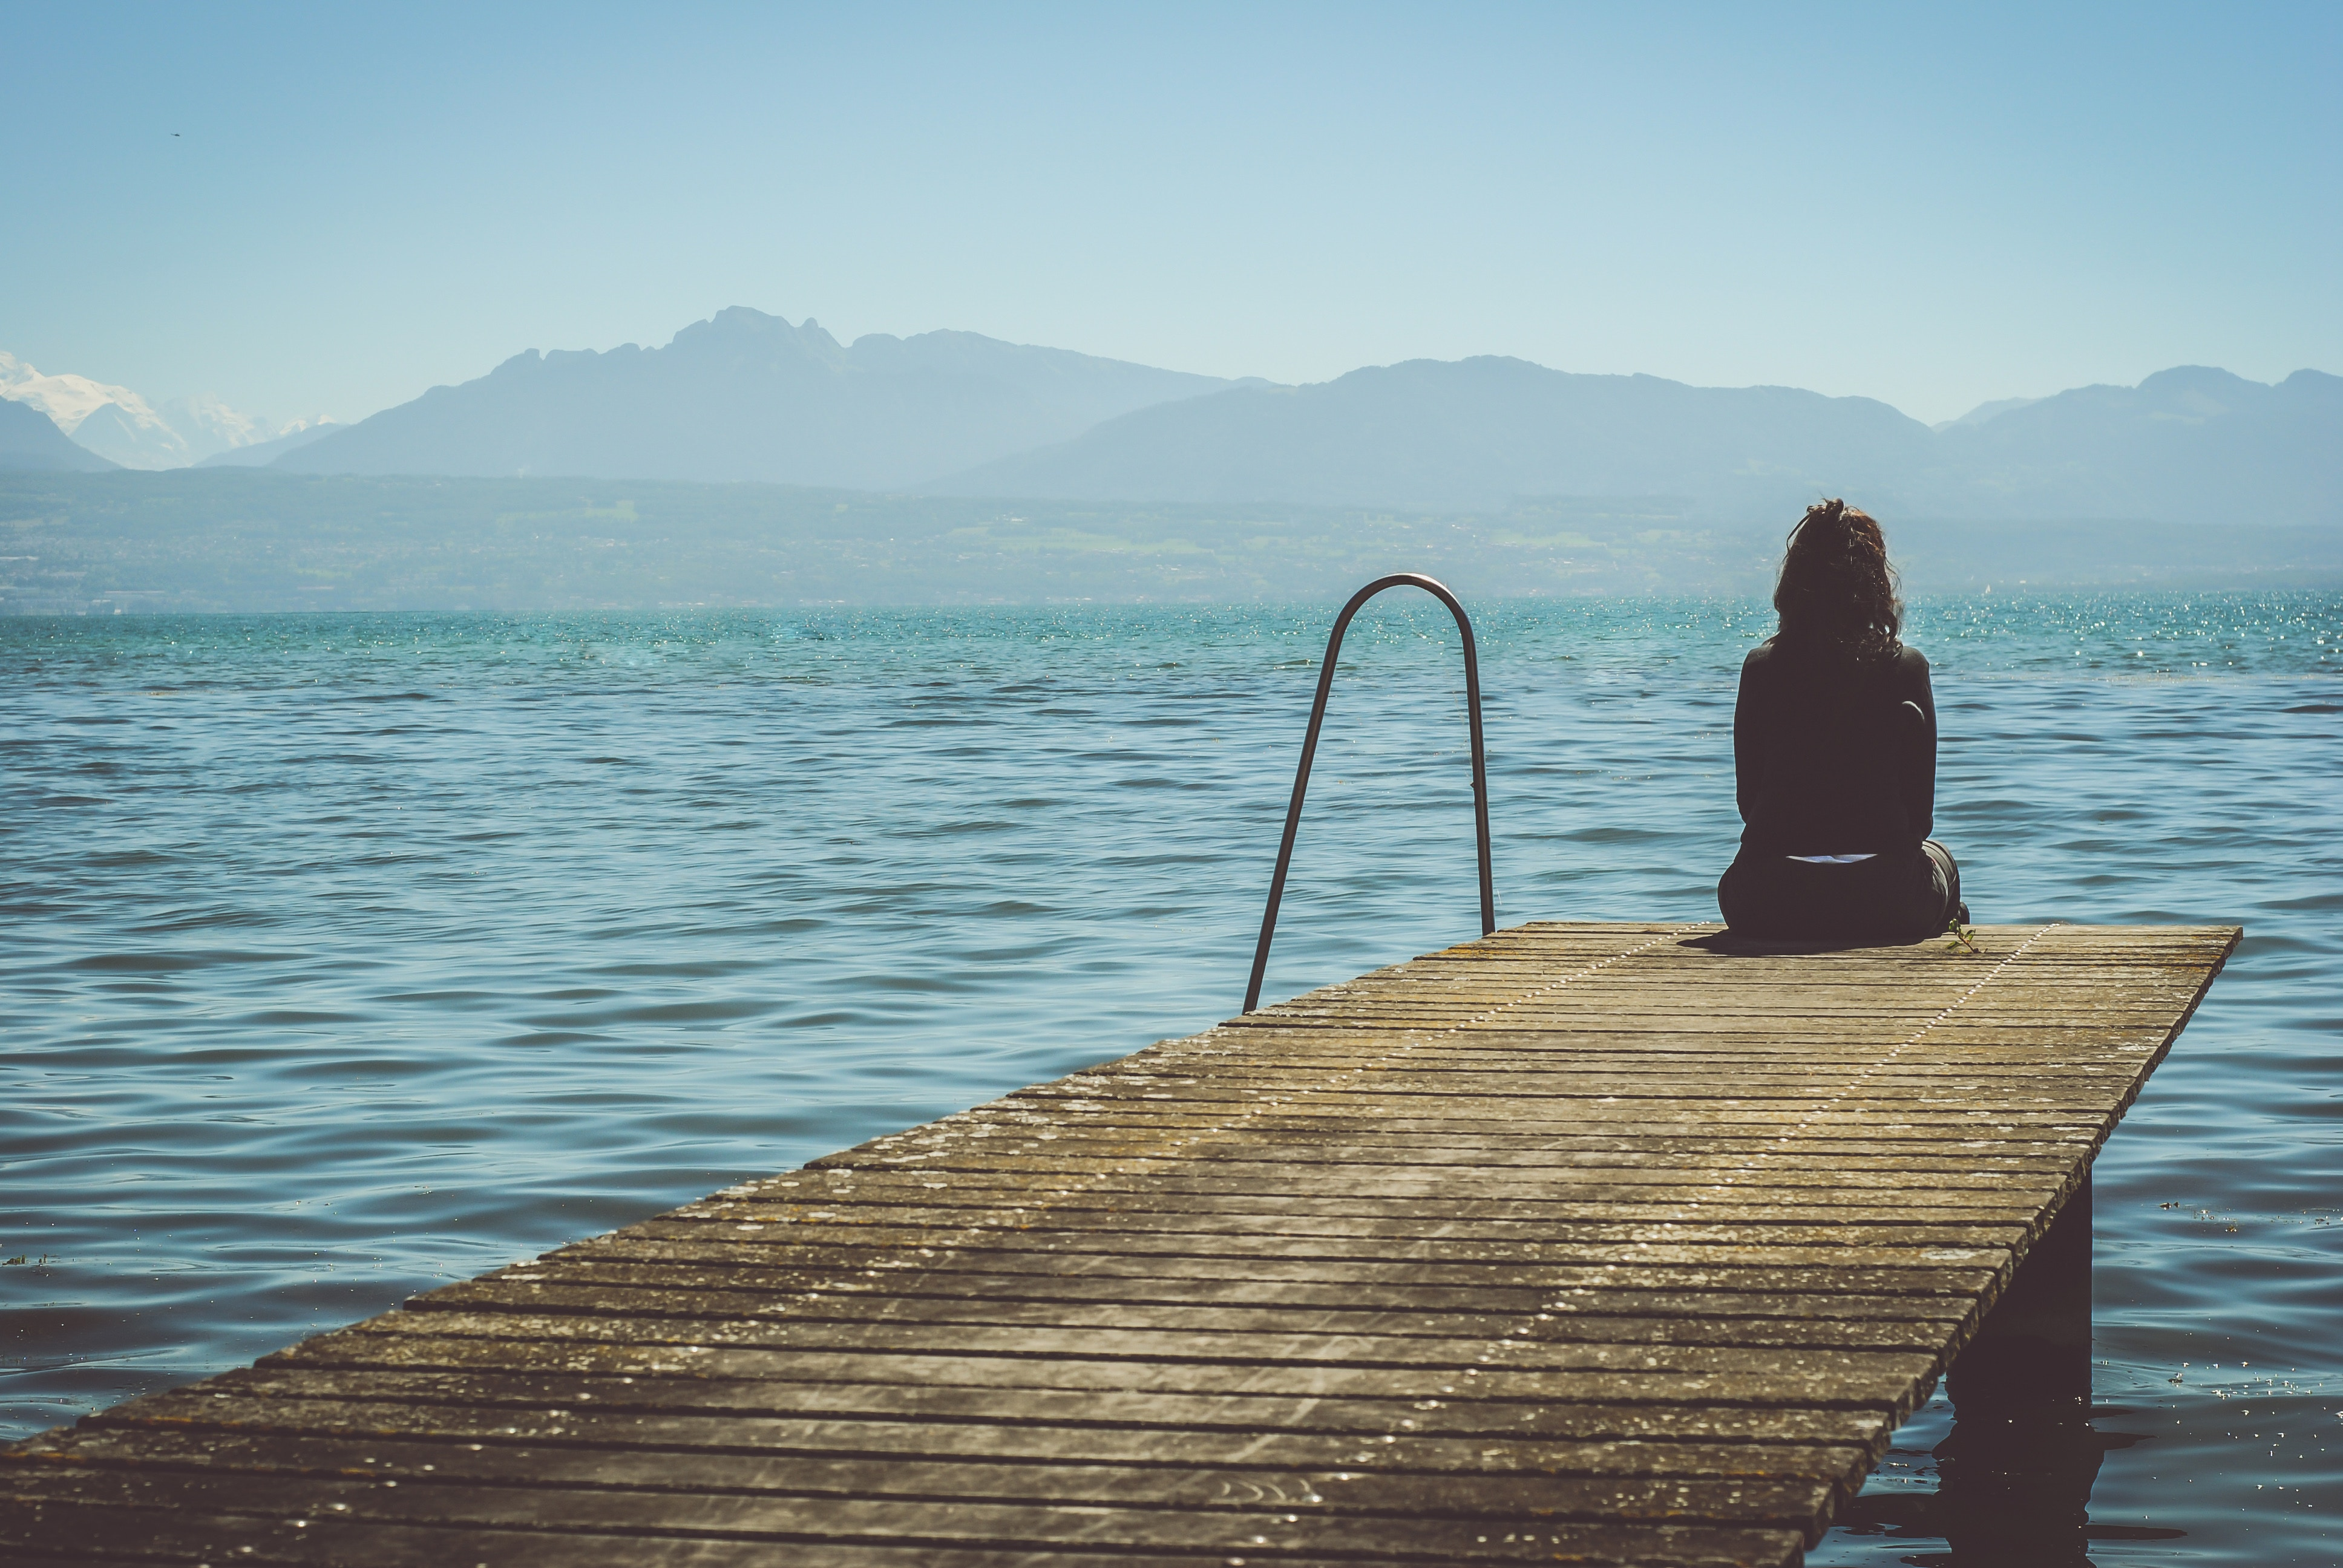 A girl in Morges sits at the end of a dock and stares at the mountains